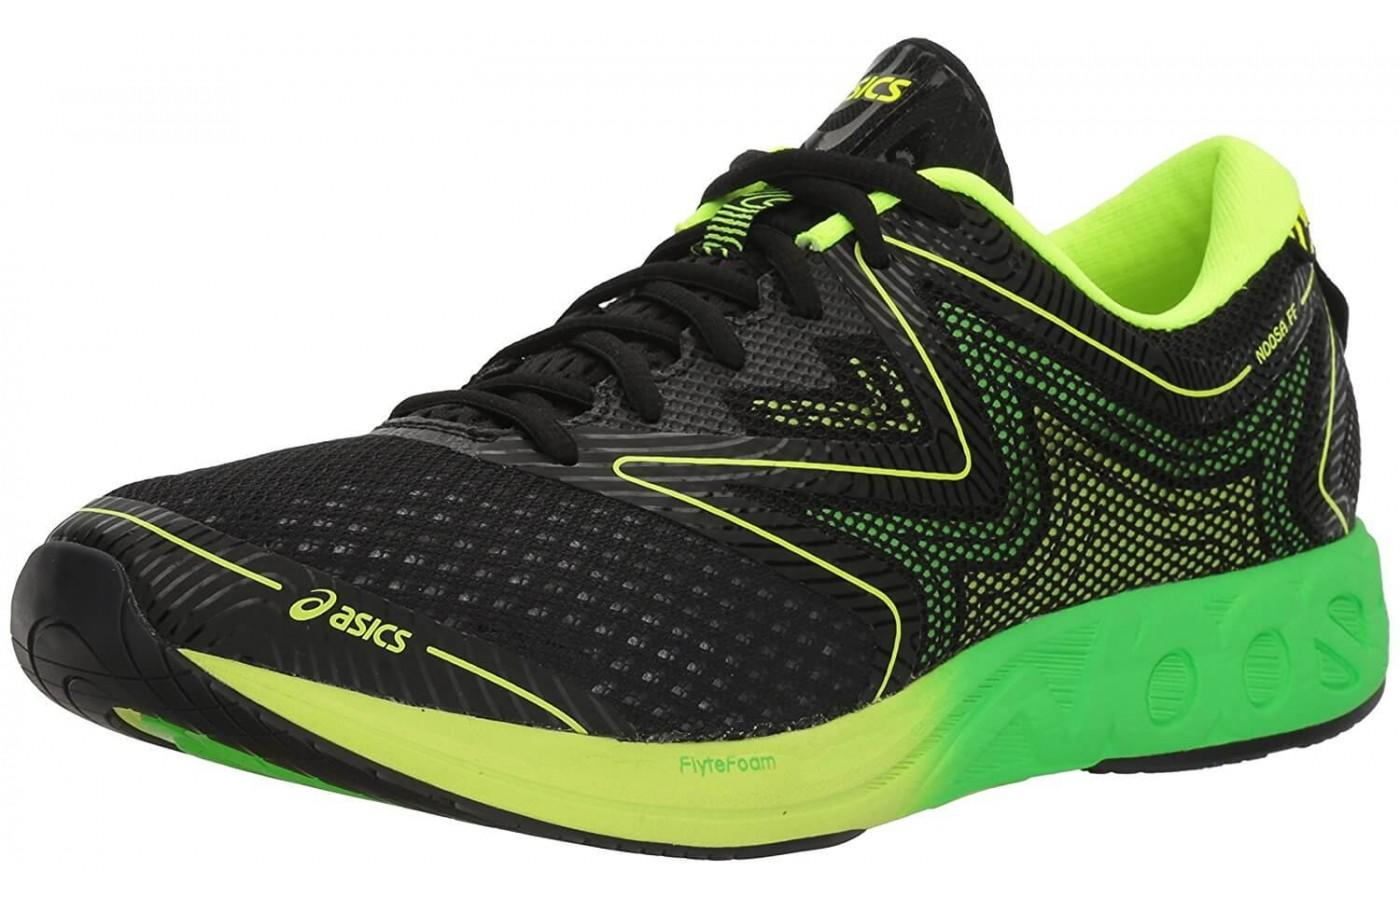 94cd58db4a the Asics Noosa FF is a very comfortable shoe that was made with  triathletes in mind ...